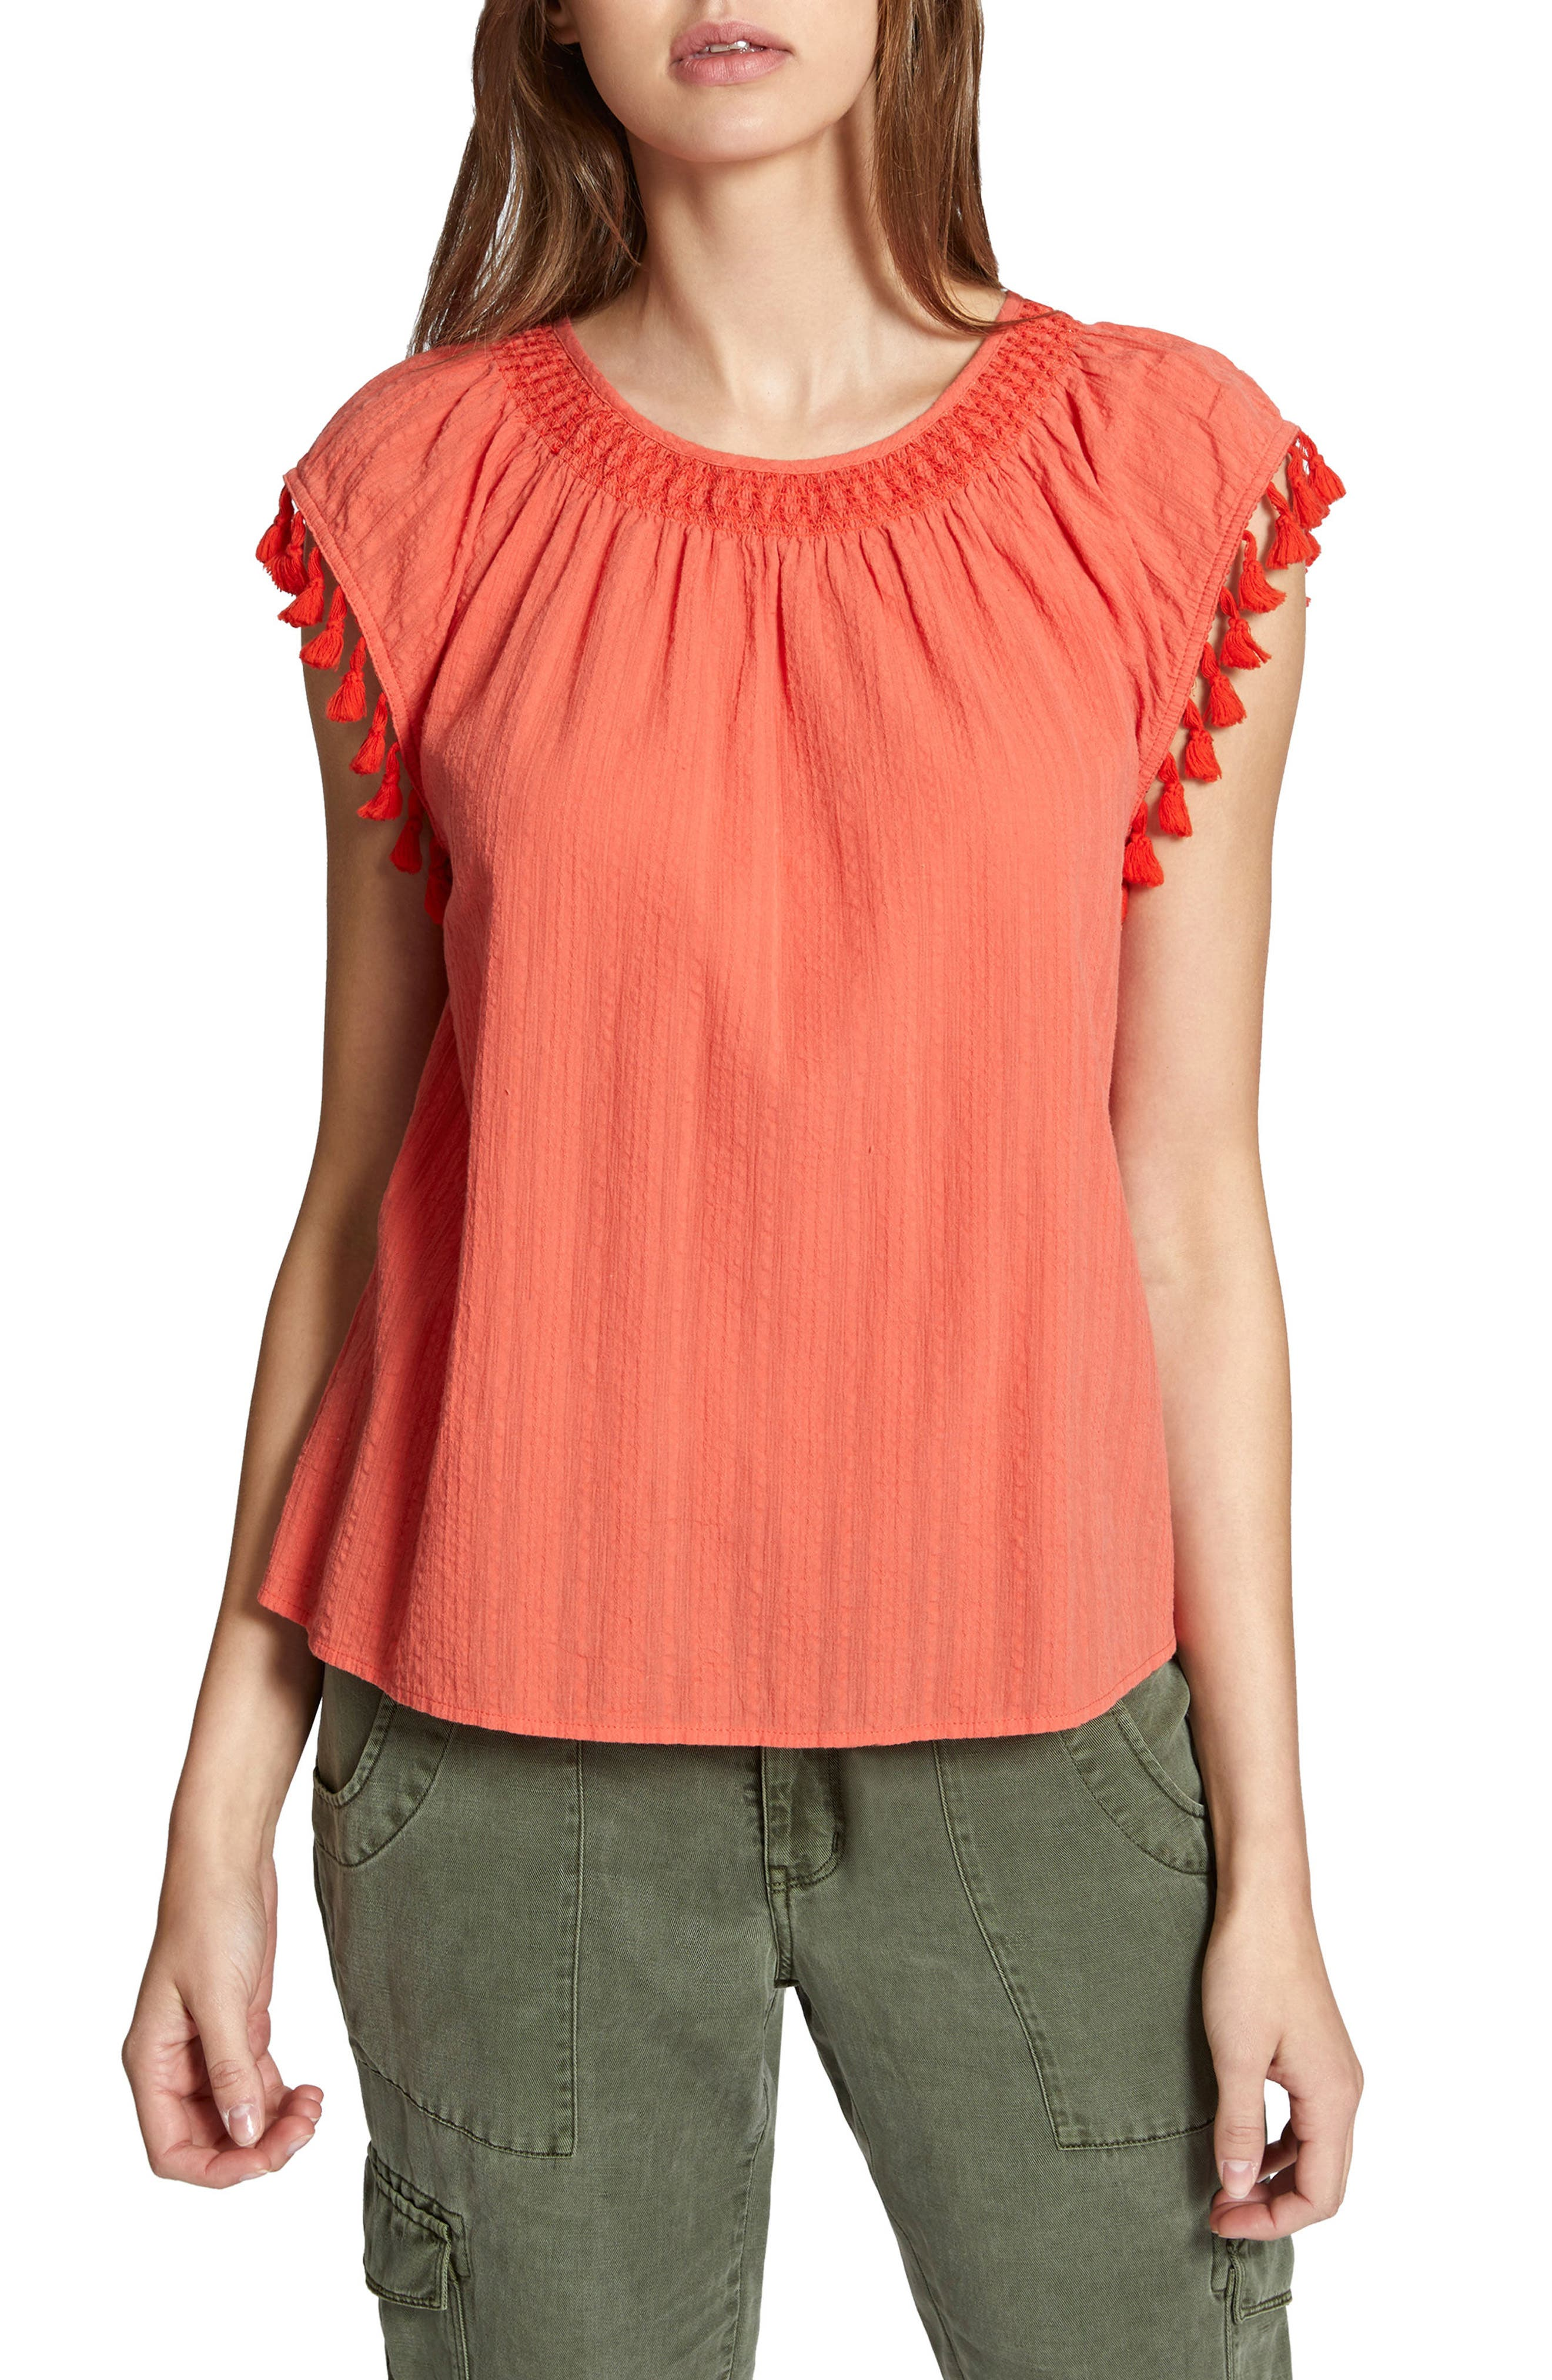 Gobi Tassel Top,                             Main thumbnail 1, color,                             Chili